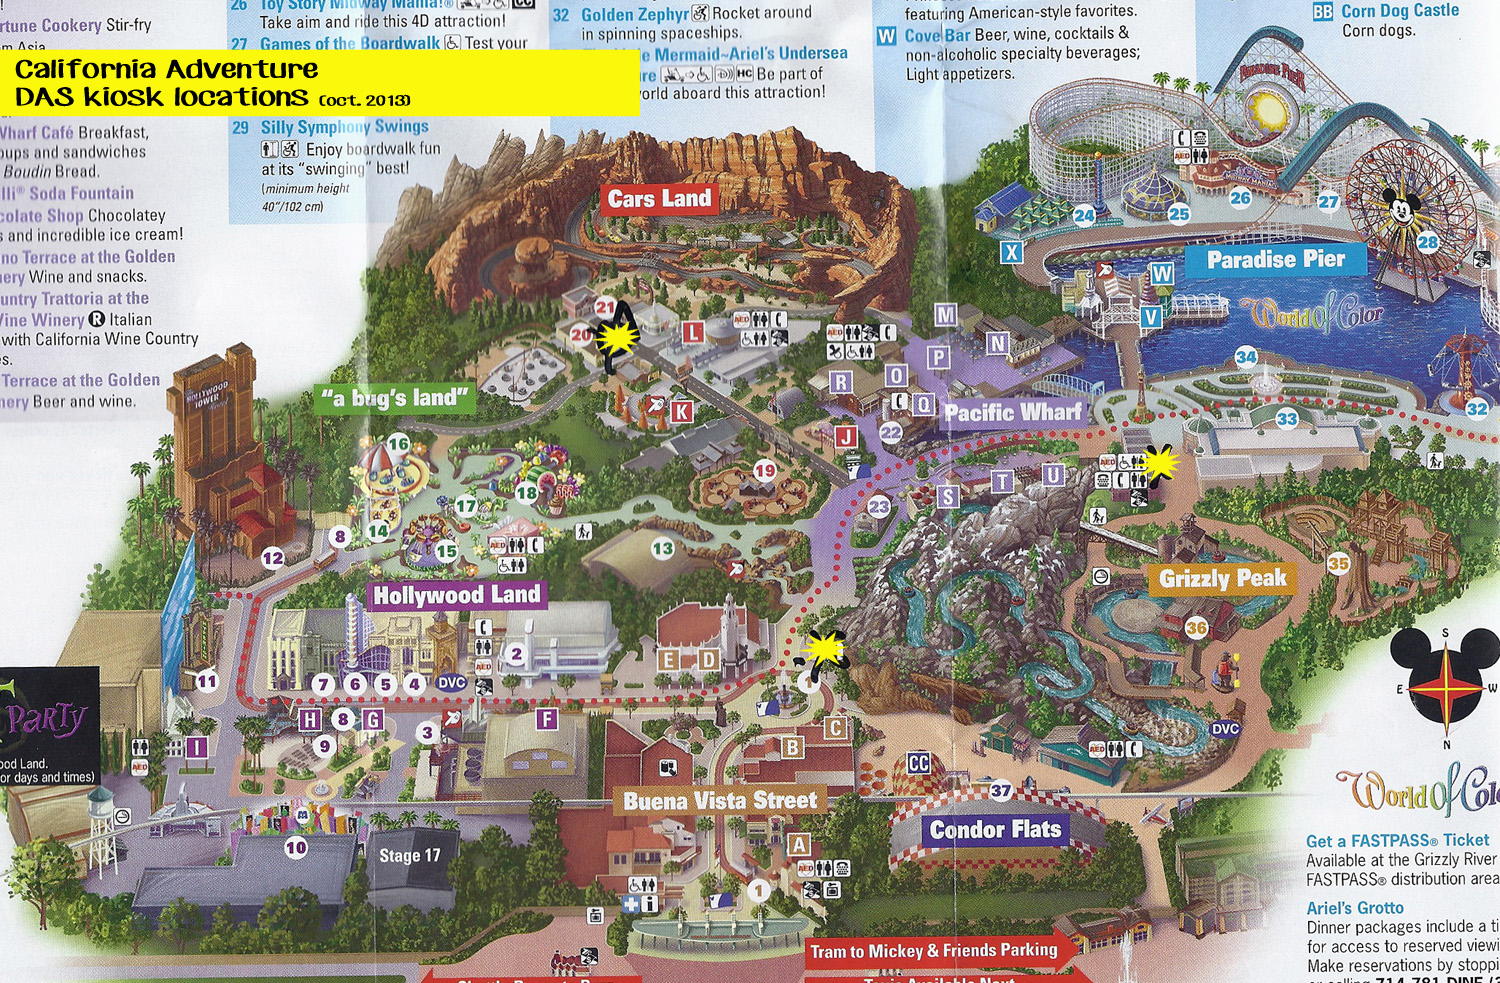 2015 Disneyland California Adventure Park Map | LZK Gallery